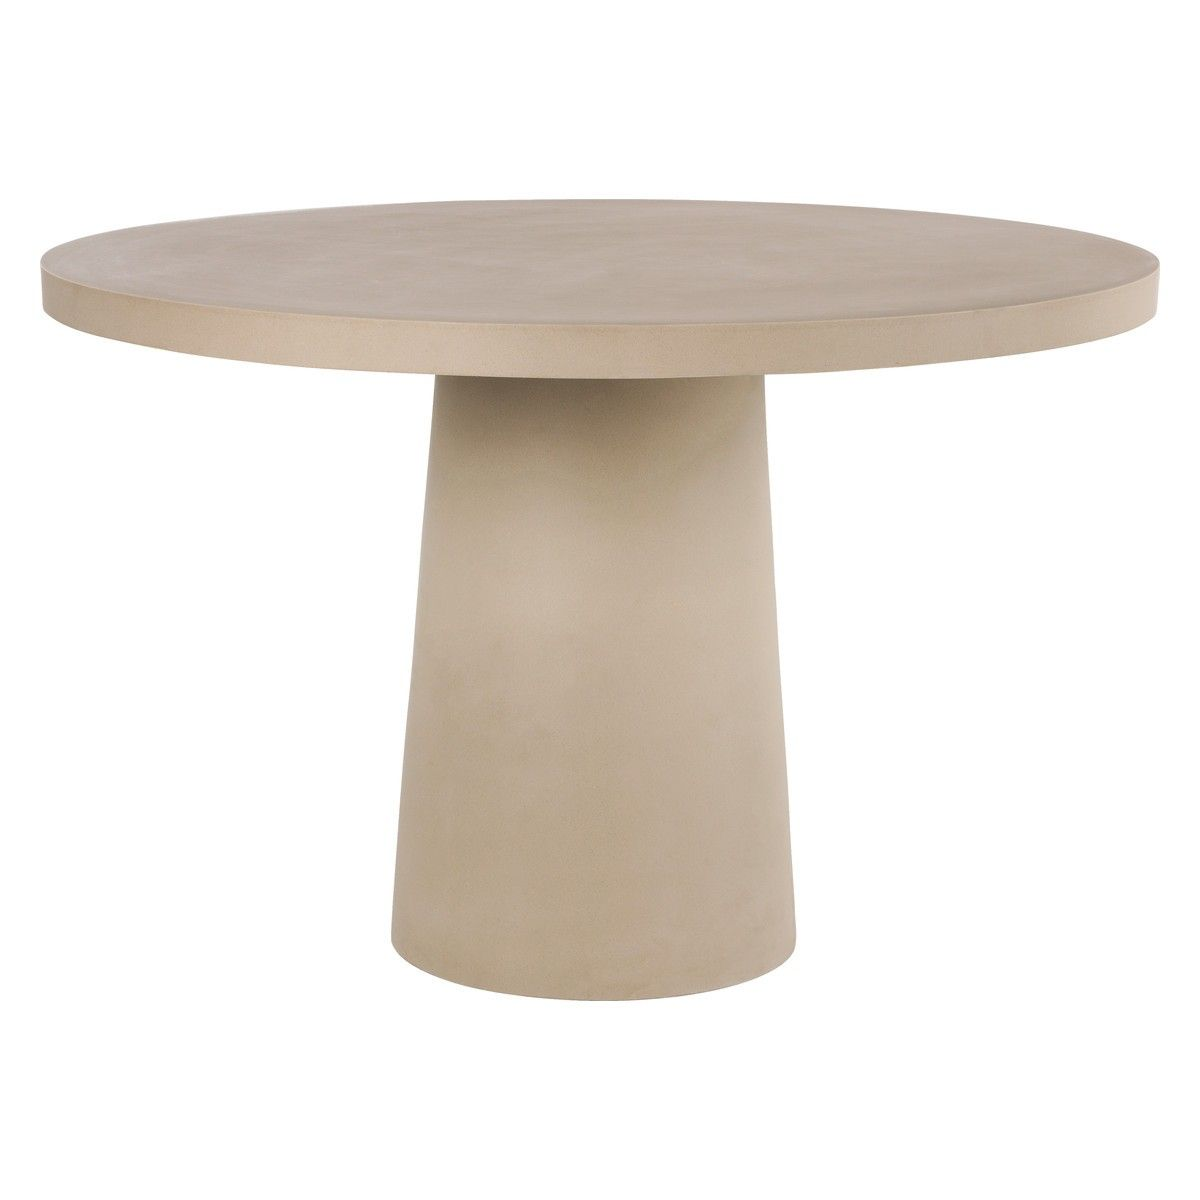 Willsden Seat Black Garden Table Round Garden Table Garden